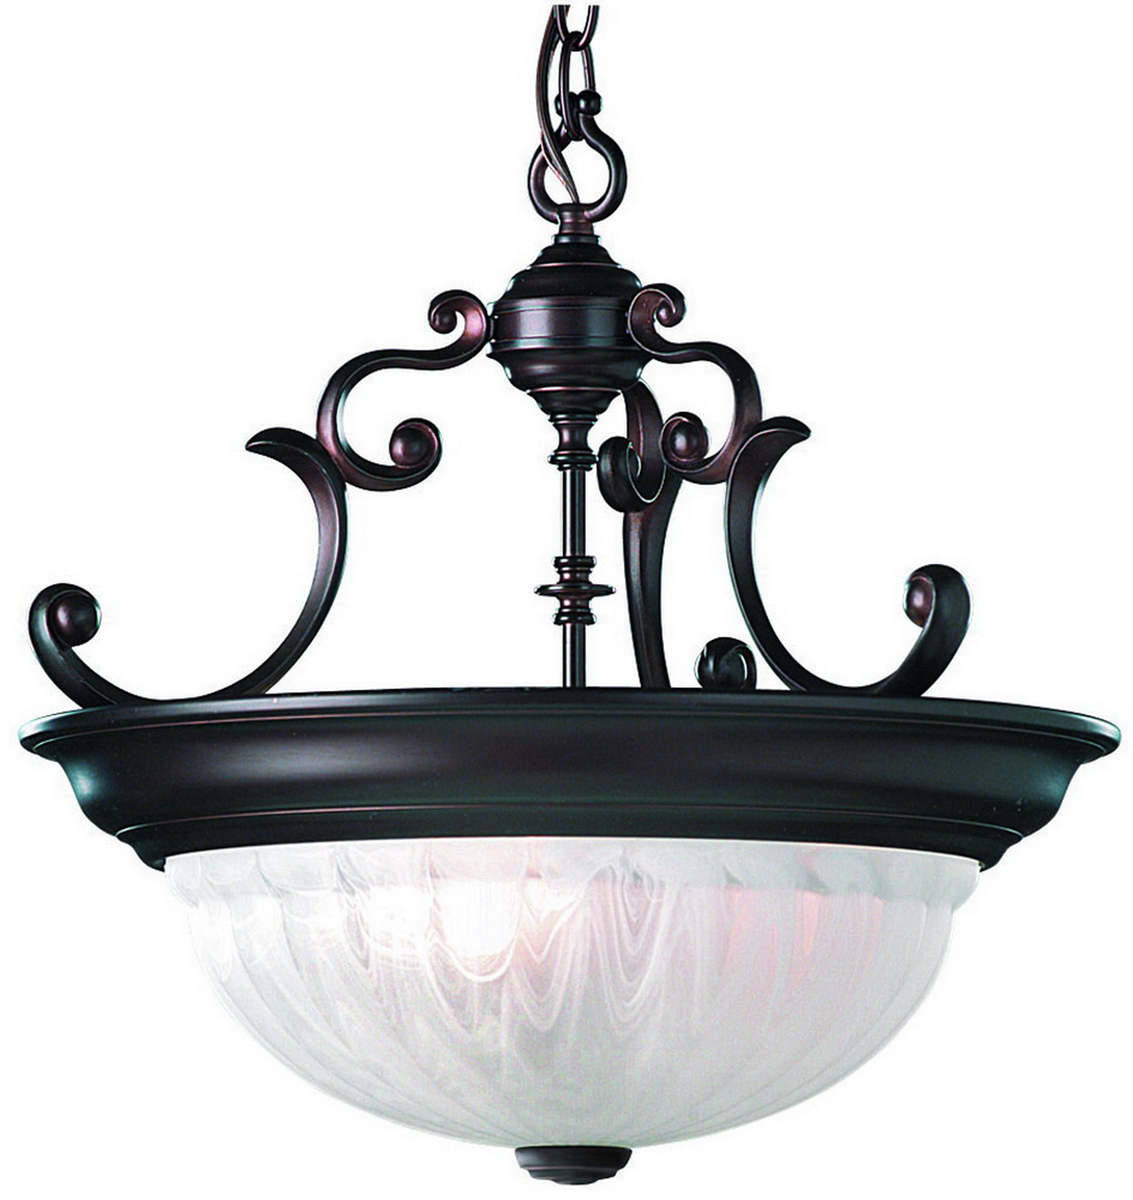 Dolan Design 527 30 Richland 3 Light Pendant in Royal Bronze